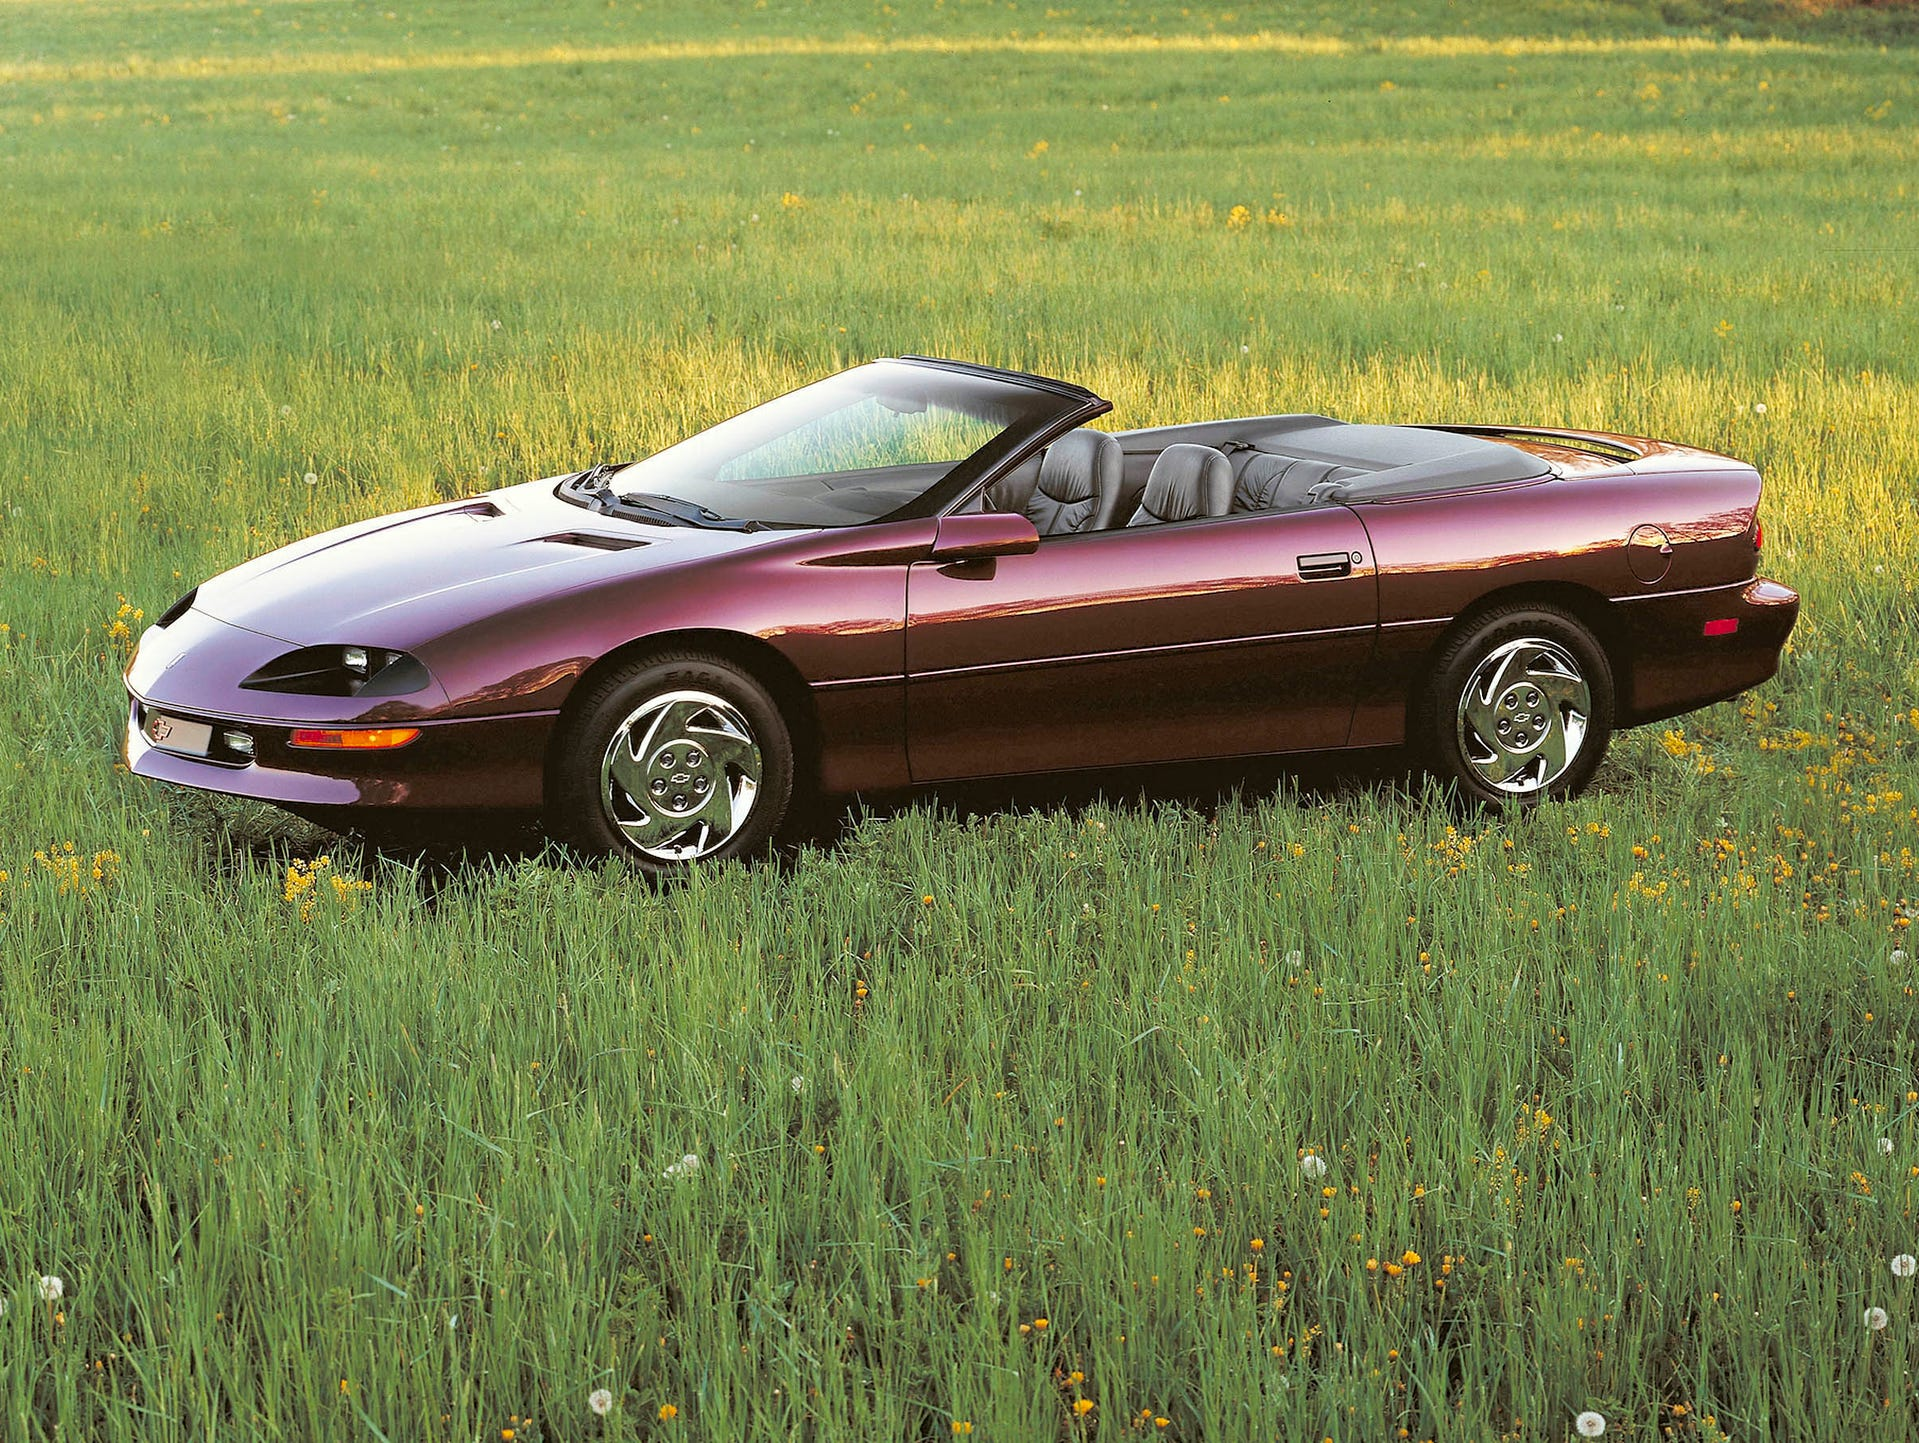 1995: The base V-6 engine made 200 horsepower for